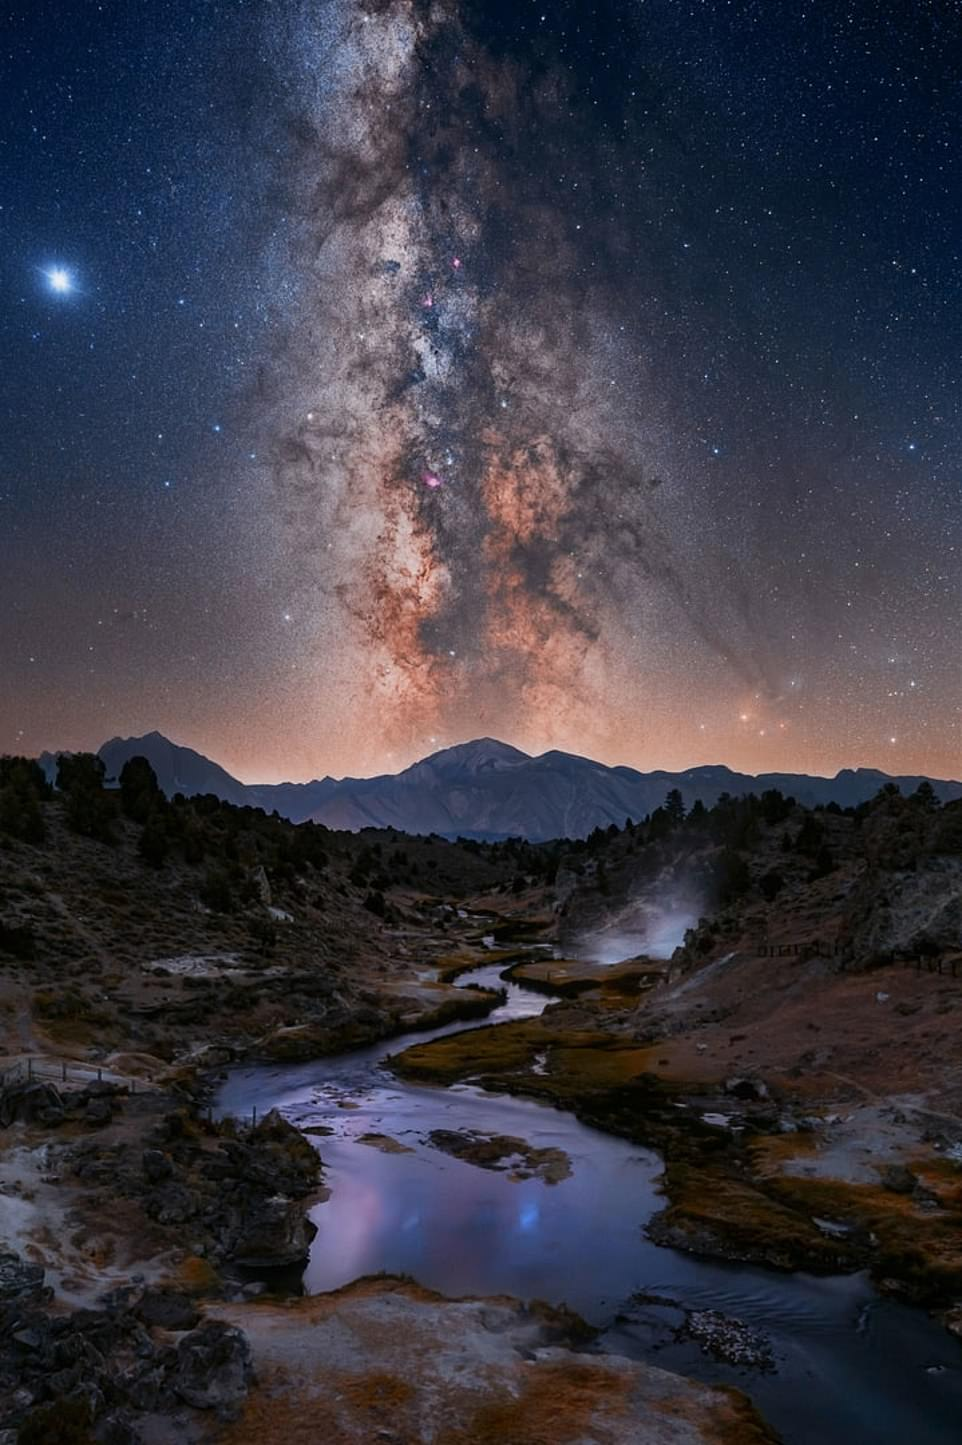 'When all the stars align'— by Kelly Teich in Mammoth Lakes, California. Ms Teich said: 'This particular location, near Mammoth Lakes, is a unique spot where the vertical alignment of the Milky Way's Galactic Core sits perfectly over a mountain peak and a creek with natural hot springs flowing into it. You really couldn't ask for a better foreground to work with!'